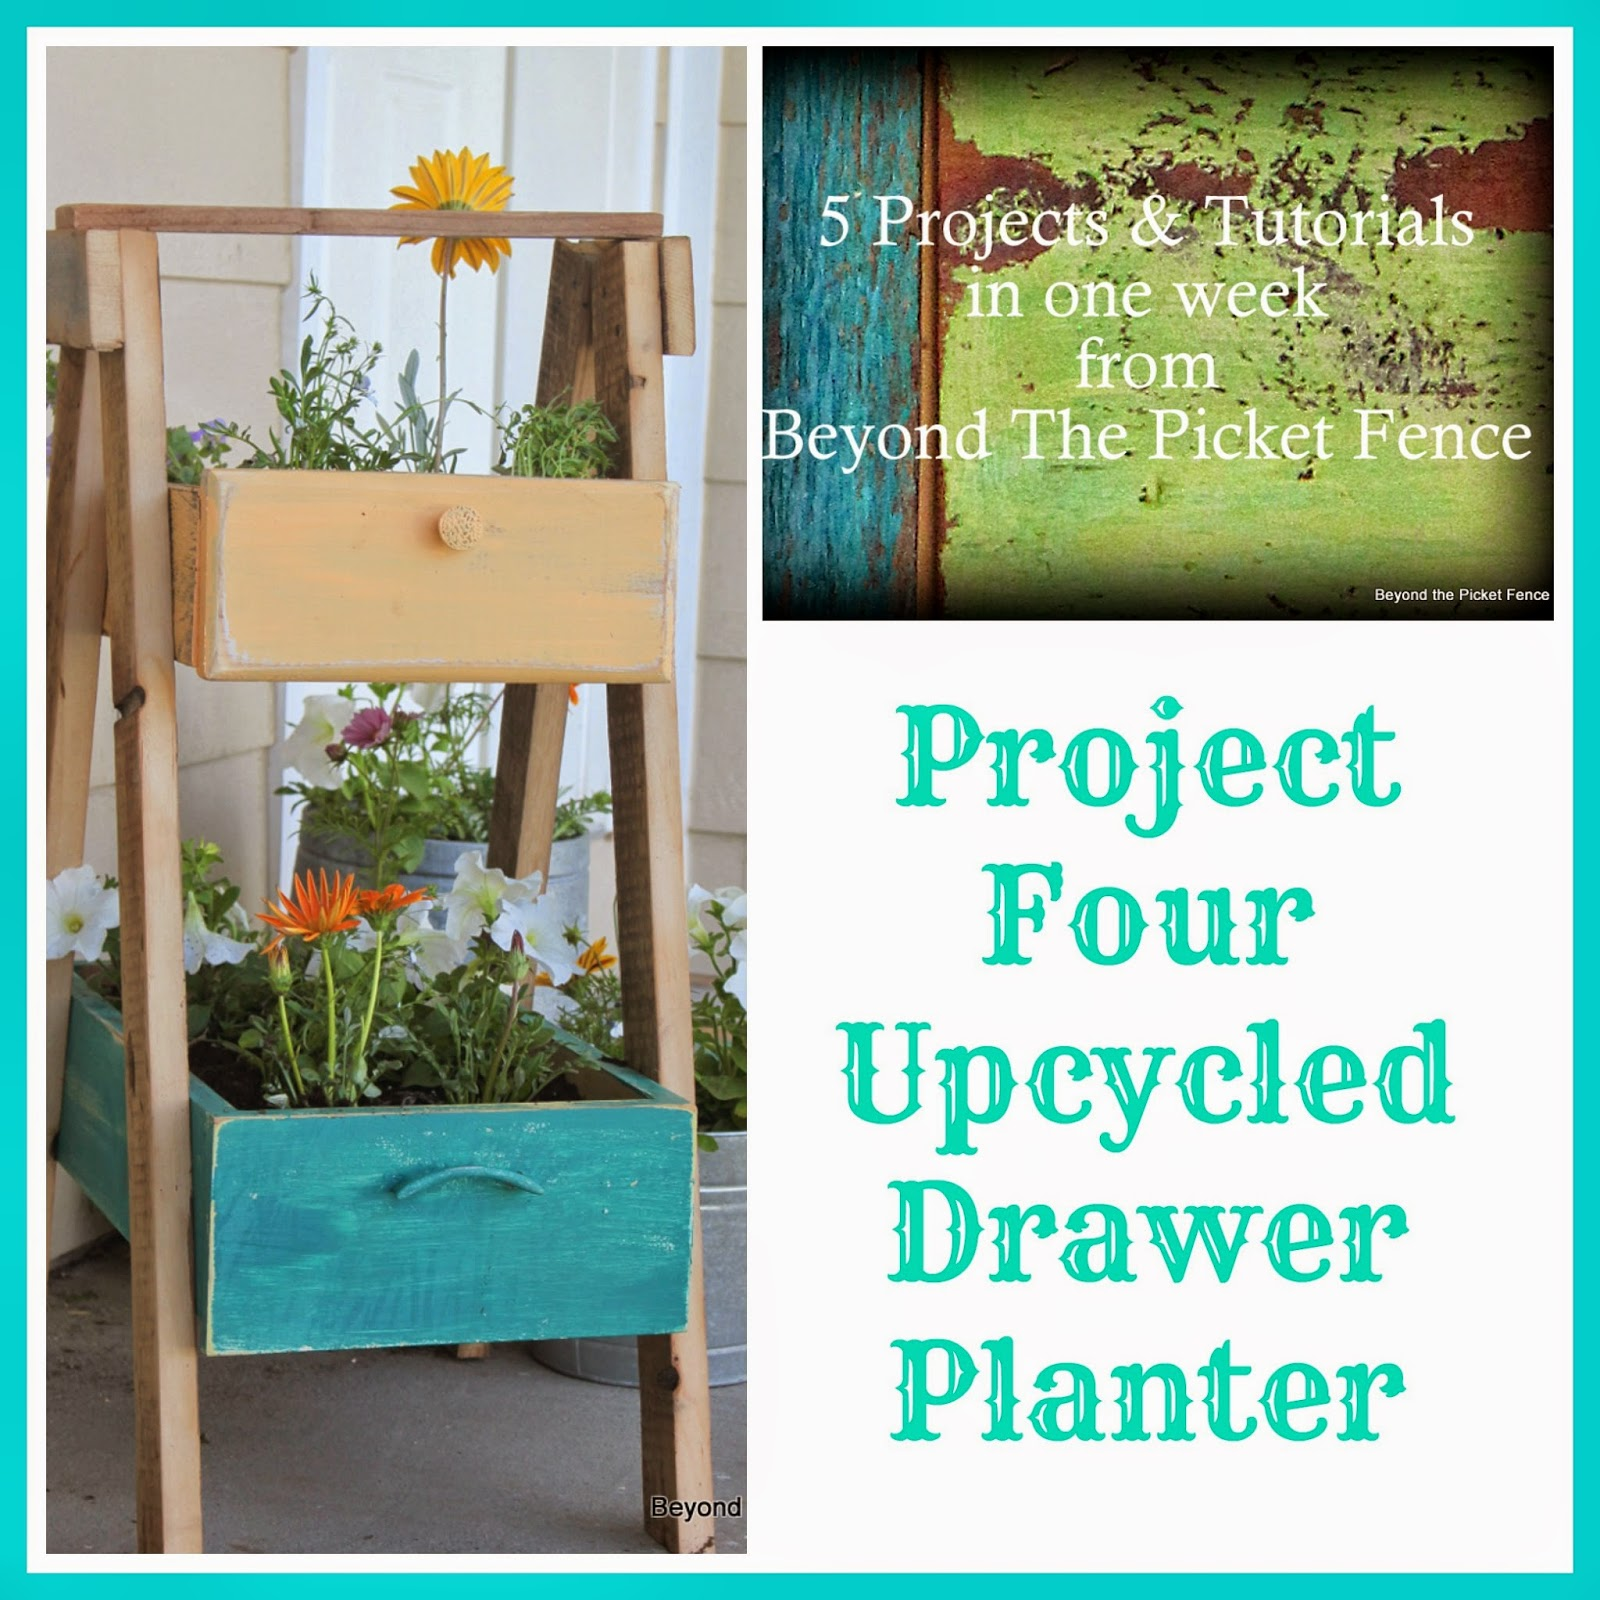 5 projects in a week project 4 upcycled drawer planter http://bec4-beyondthepicketfence.blogspot.com/2014/05/5-projects-in-week-project-4-upcycled.html